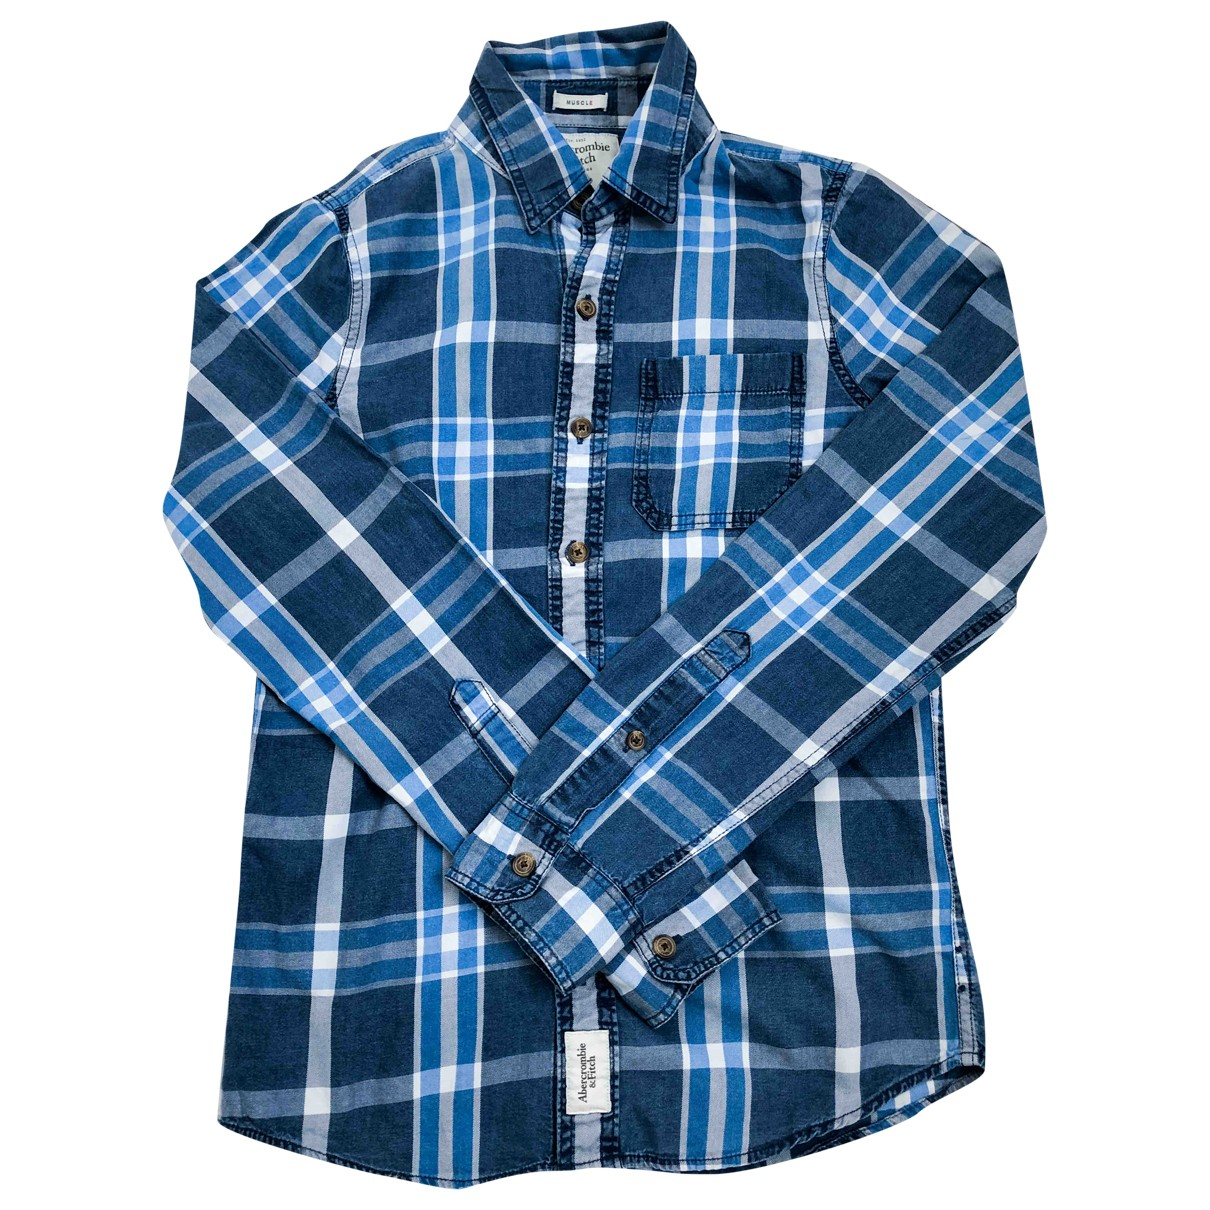 Abercrombie & Fitch \N Blue Cotton Shirts for Men S International